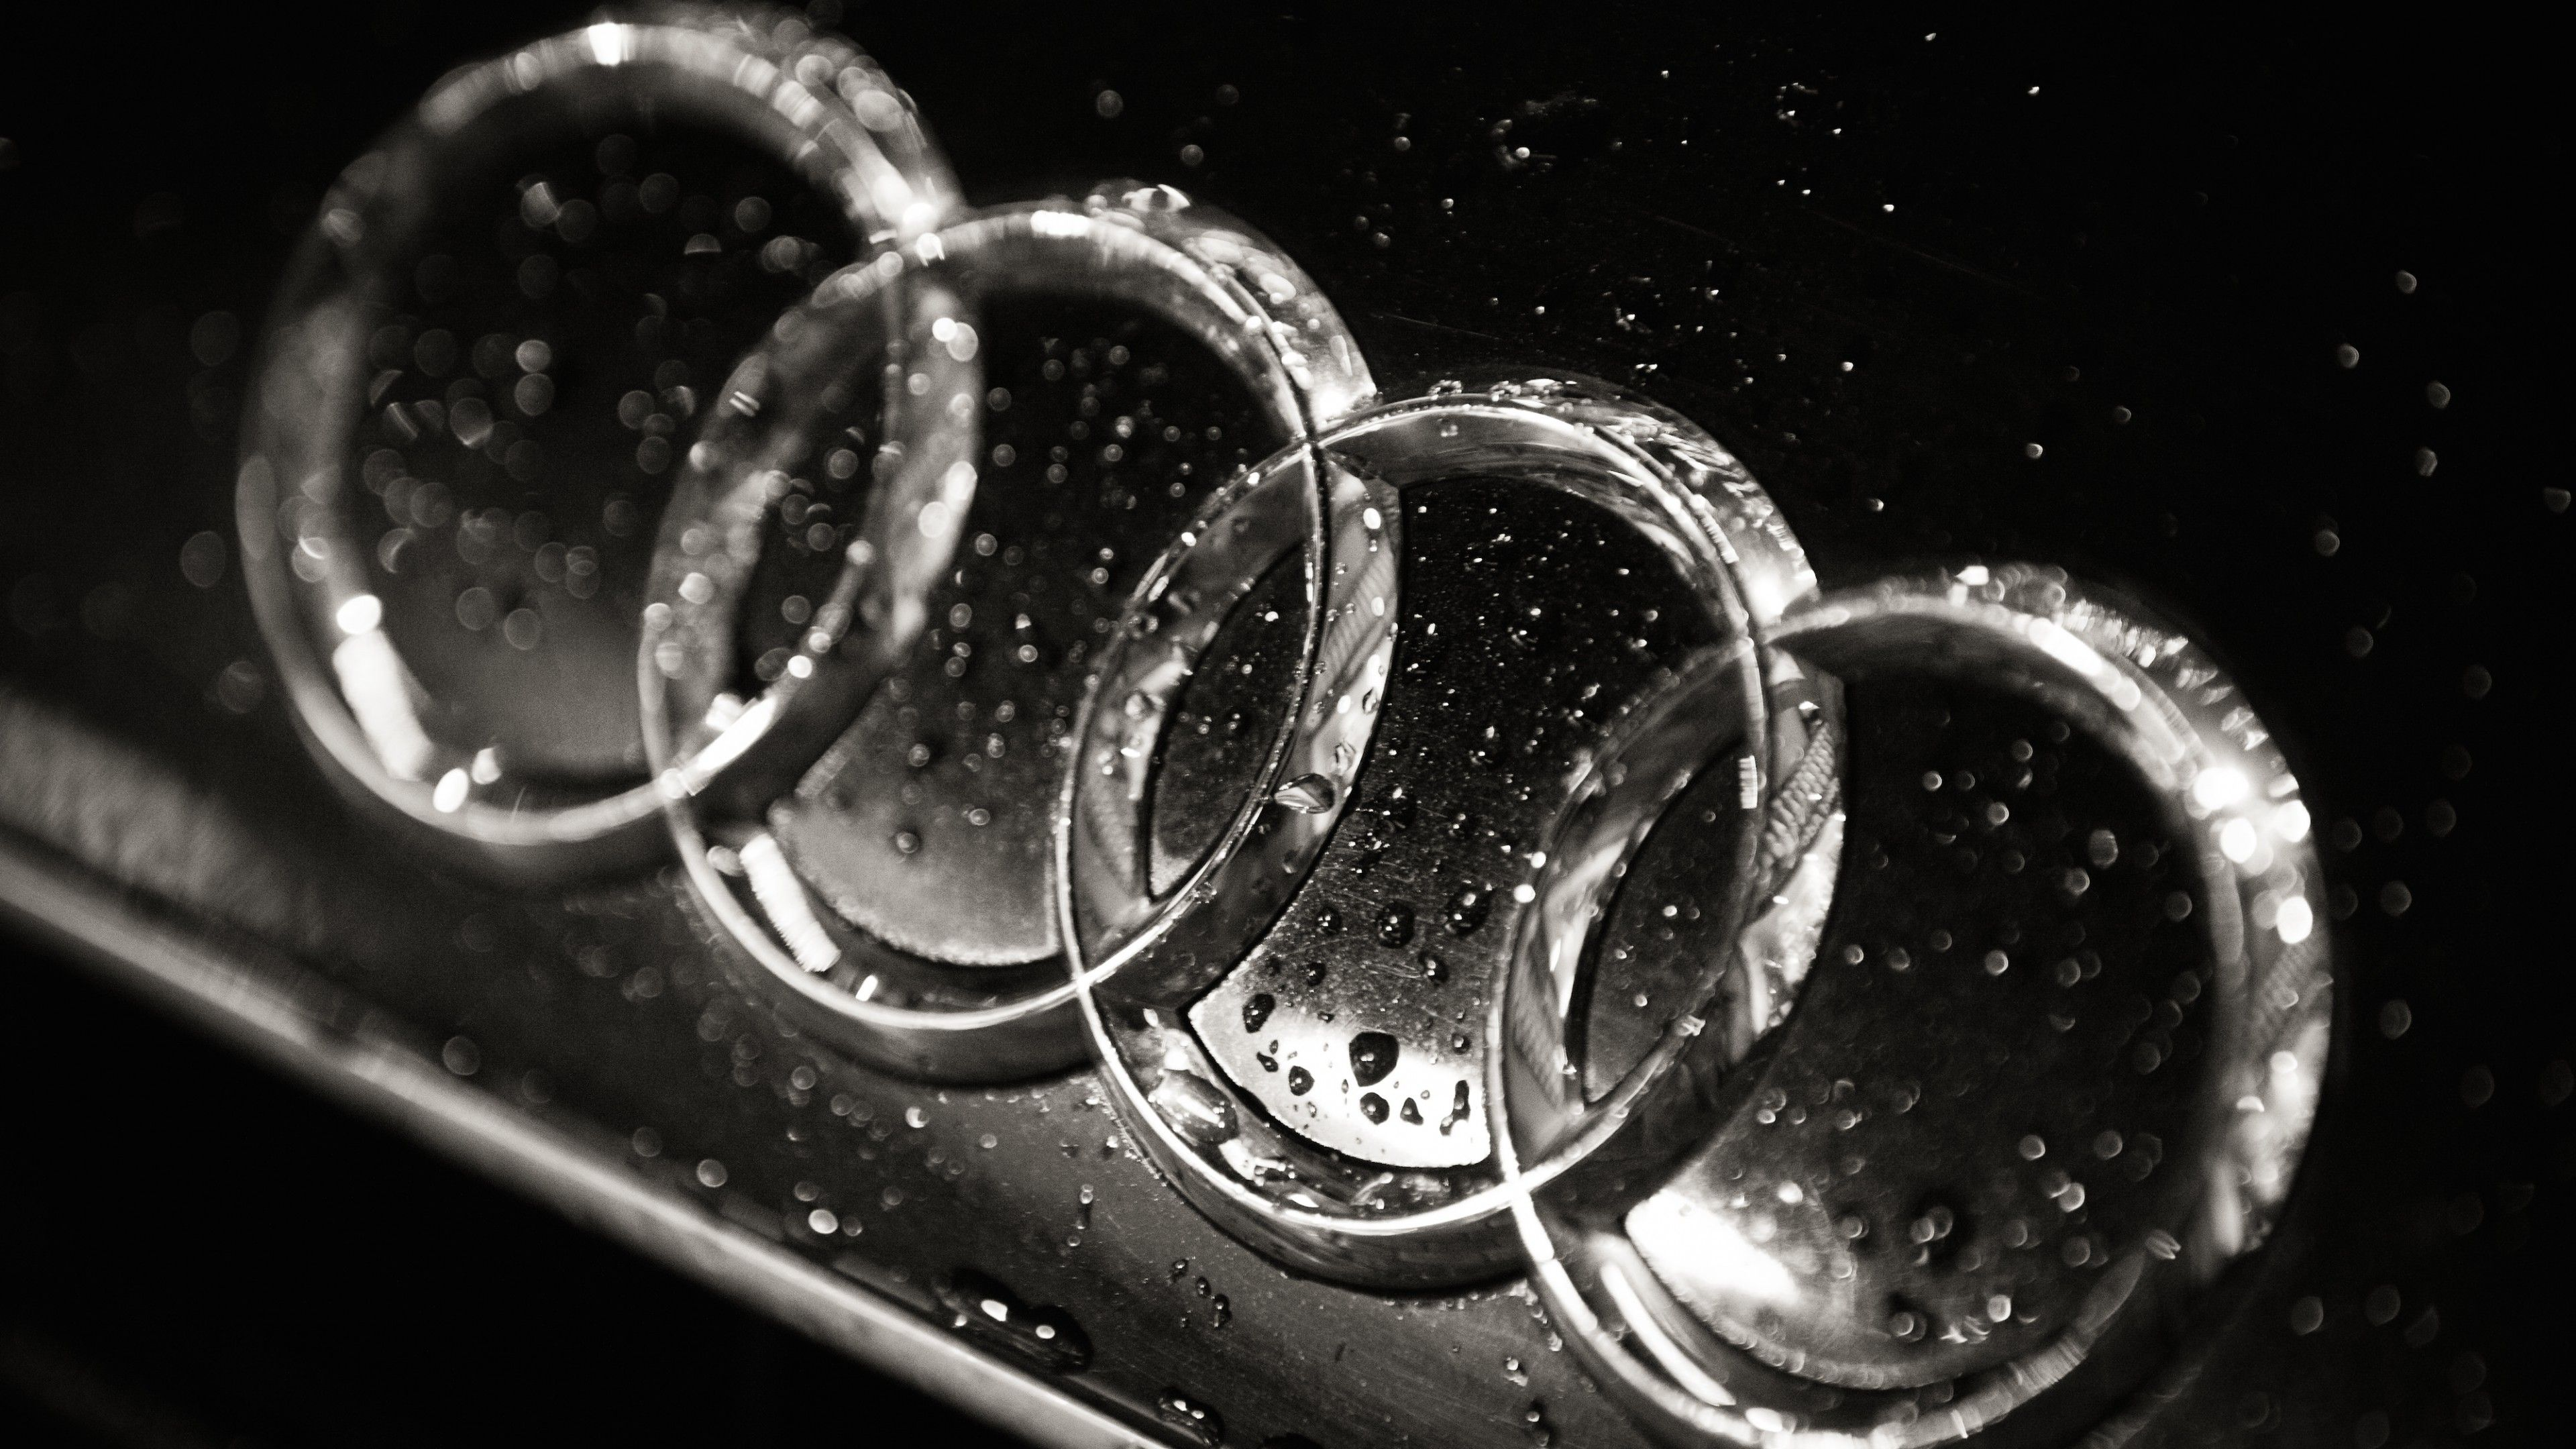 Audi Logo Wallpaper High Definition For Desktop Wallpaper 3840 X